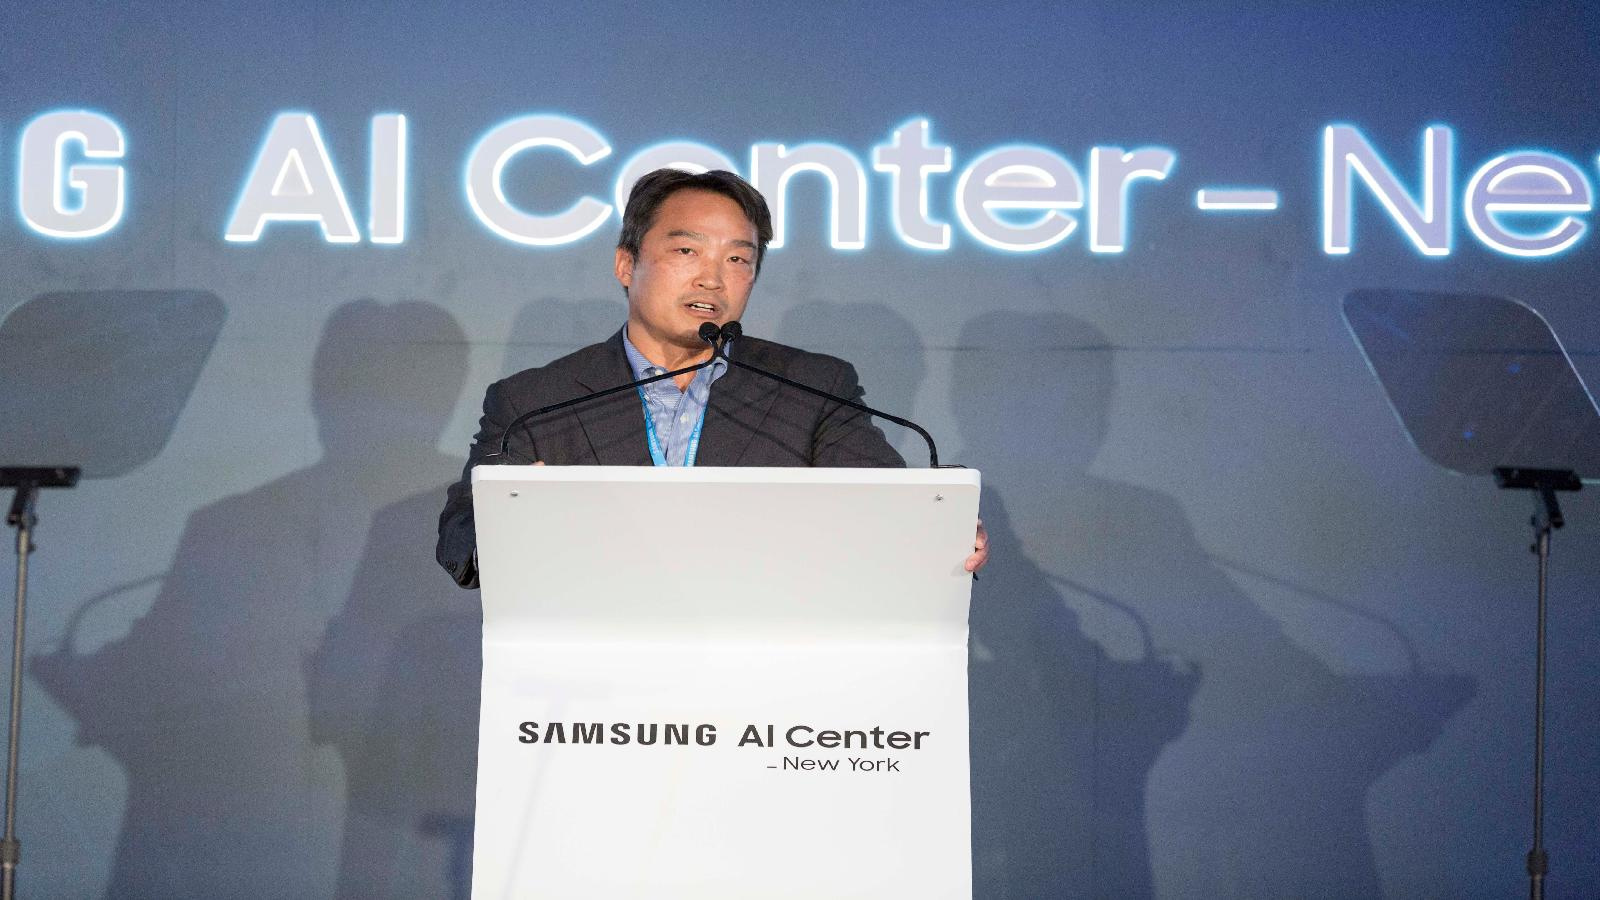 AI Center - New York 6